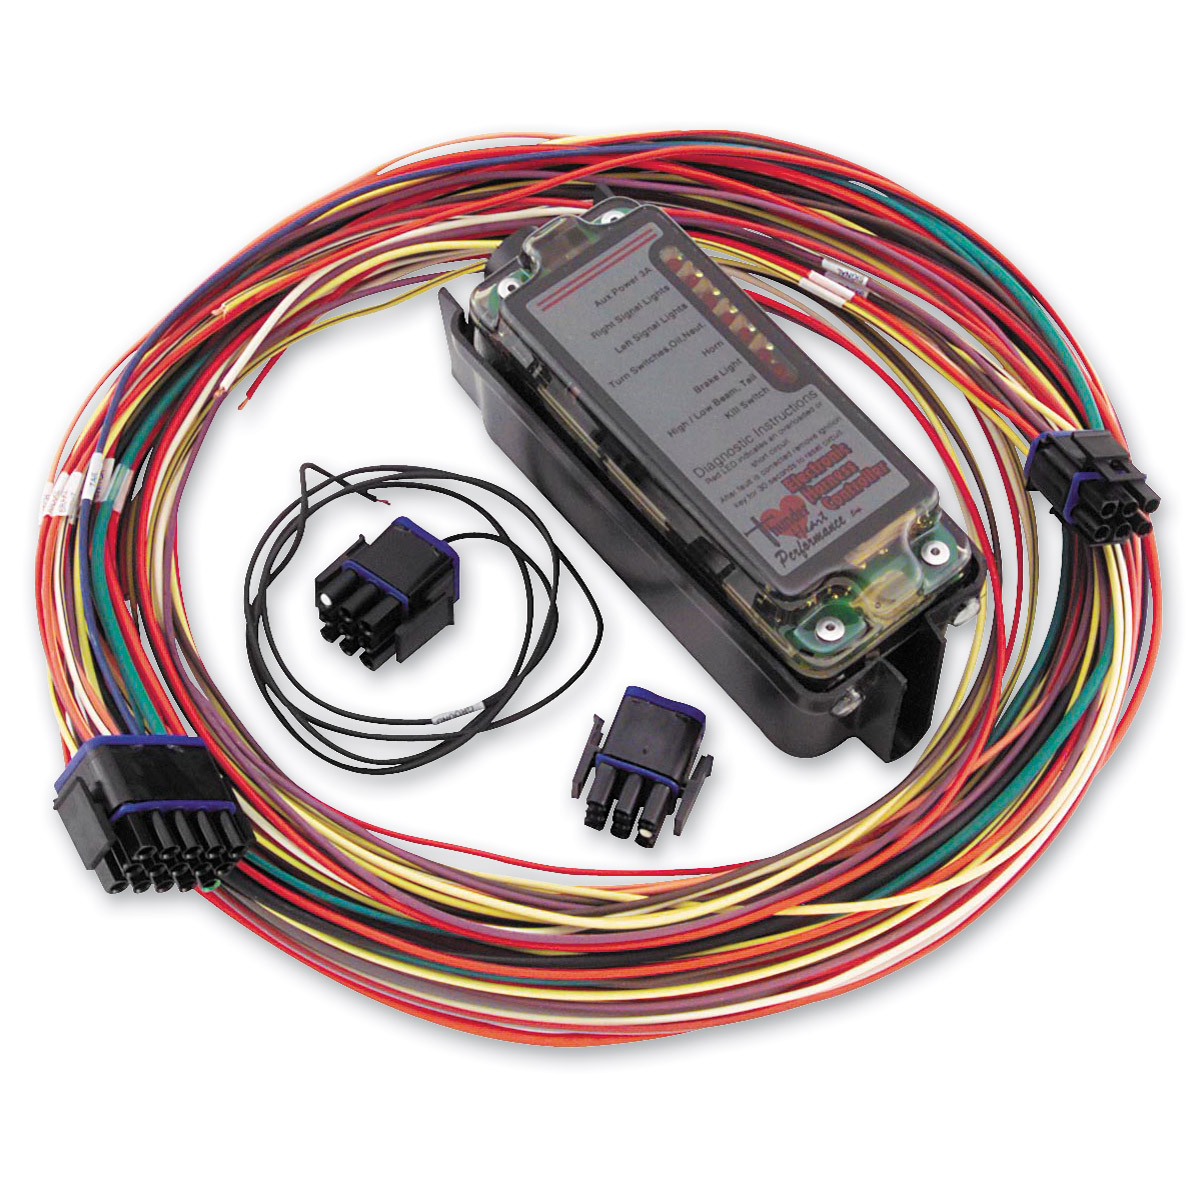 thunder heart performance complete electronic harness controller ford  engine wiring harness kit thunder heart performance complete